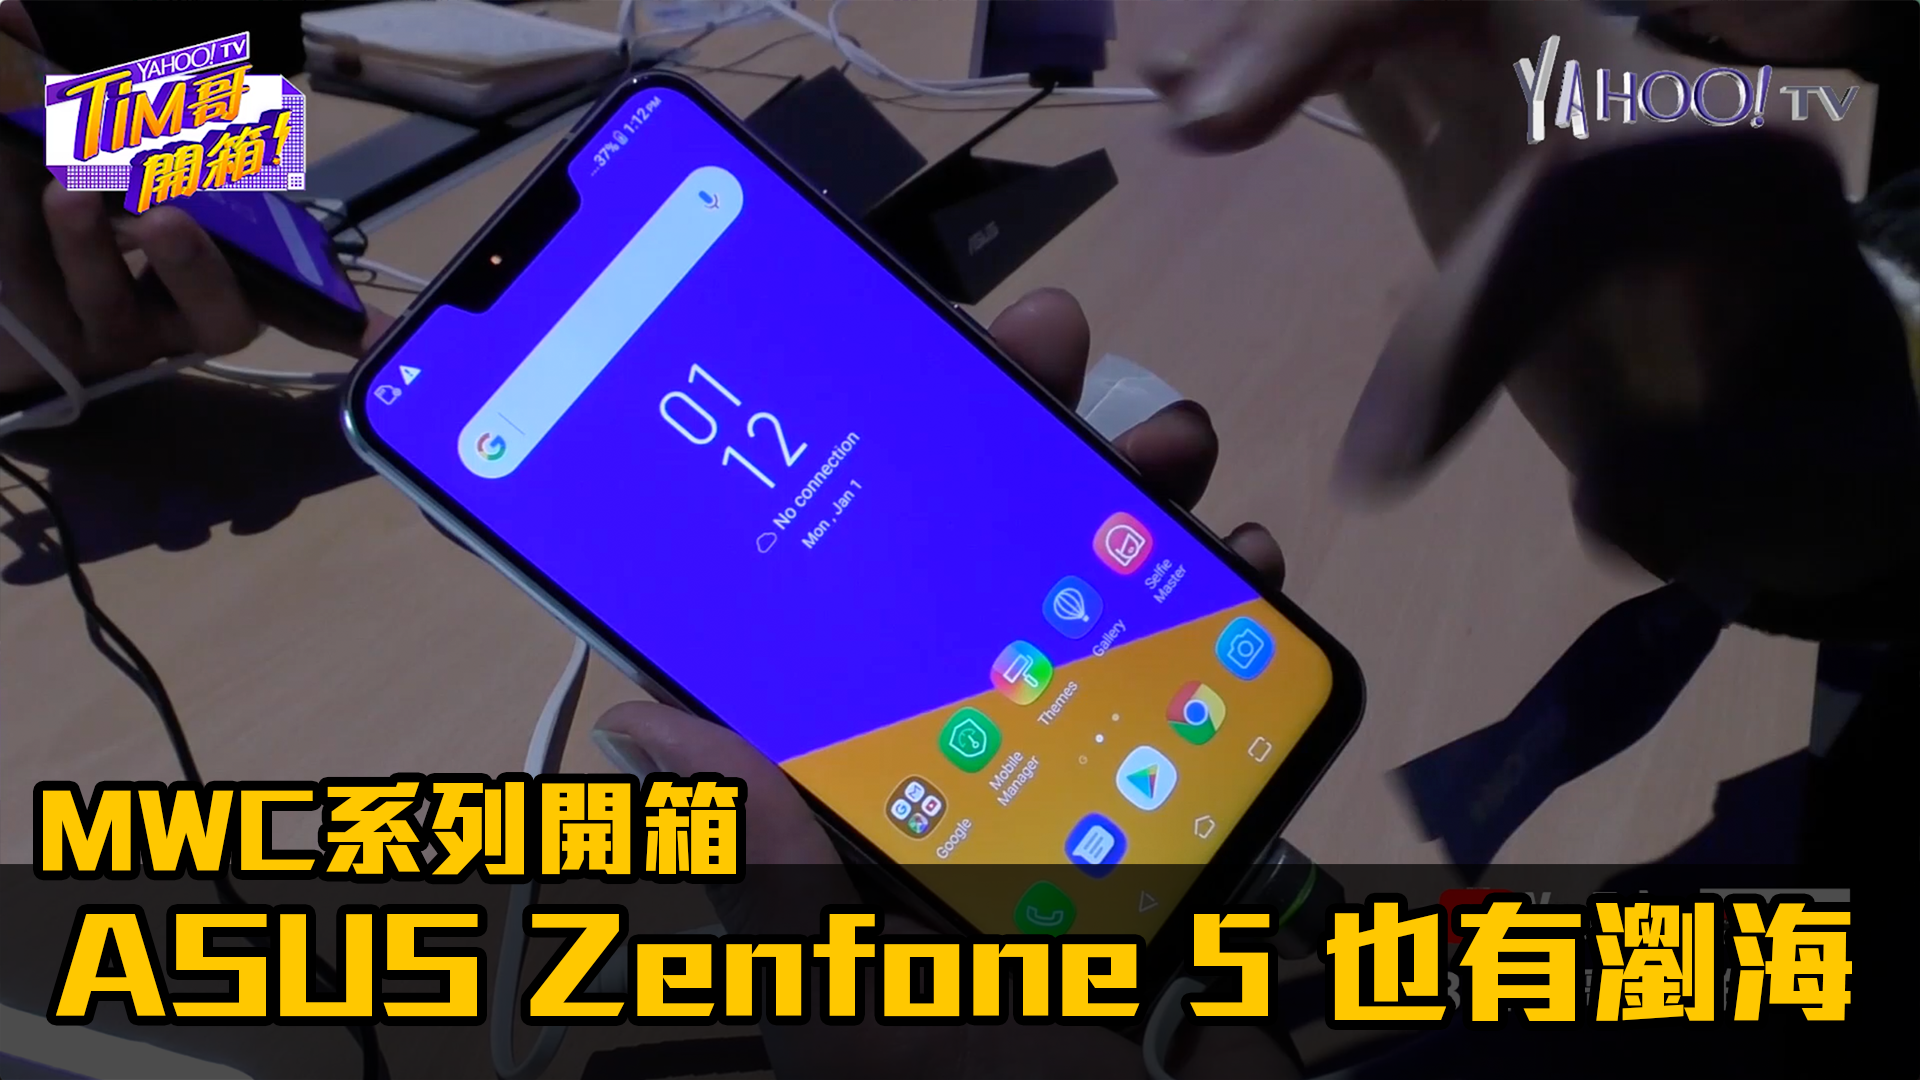 【MWC開箱直擊】ASUS Zenfone 5瀏海撞臉iPhone X